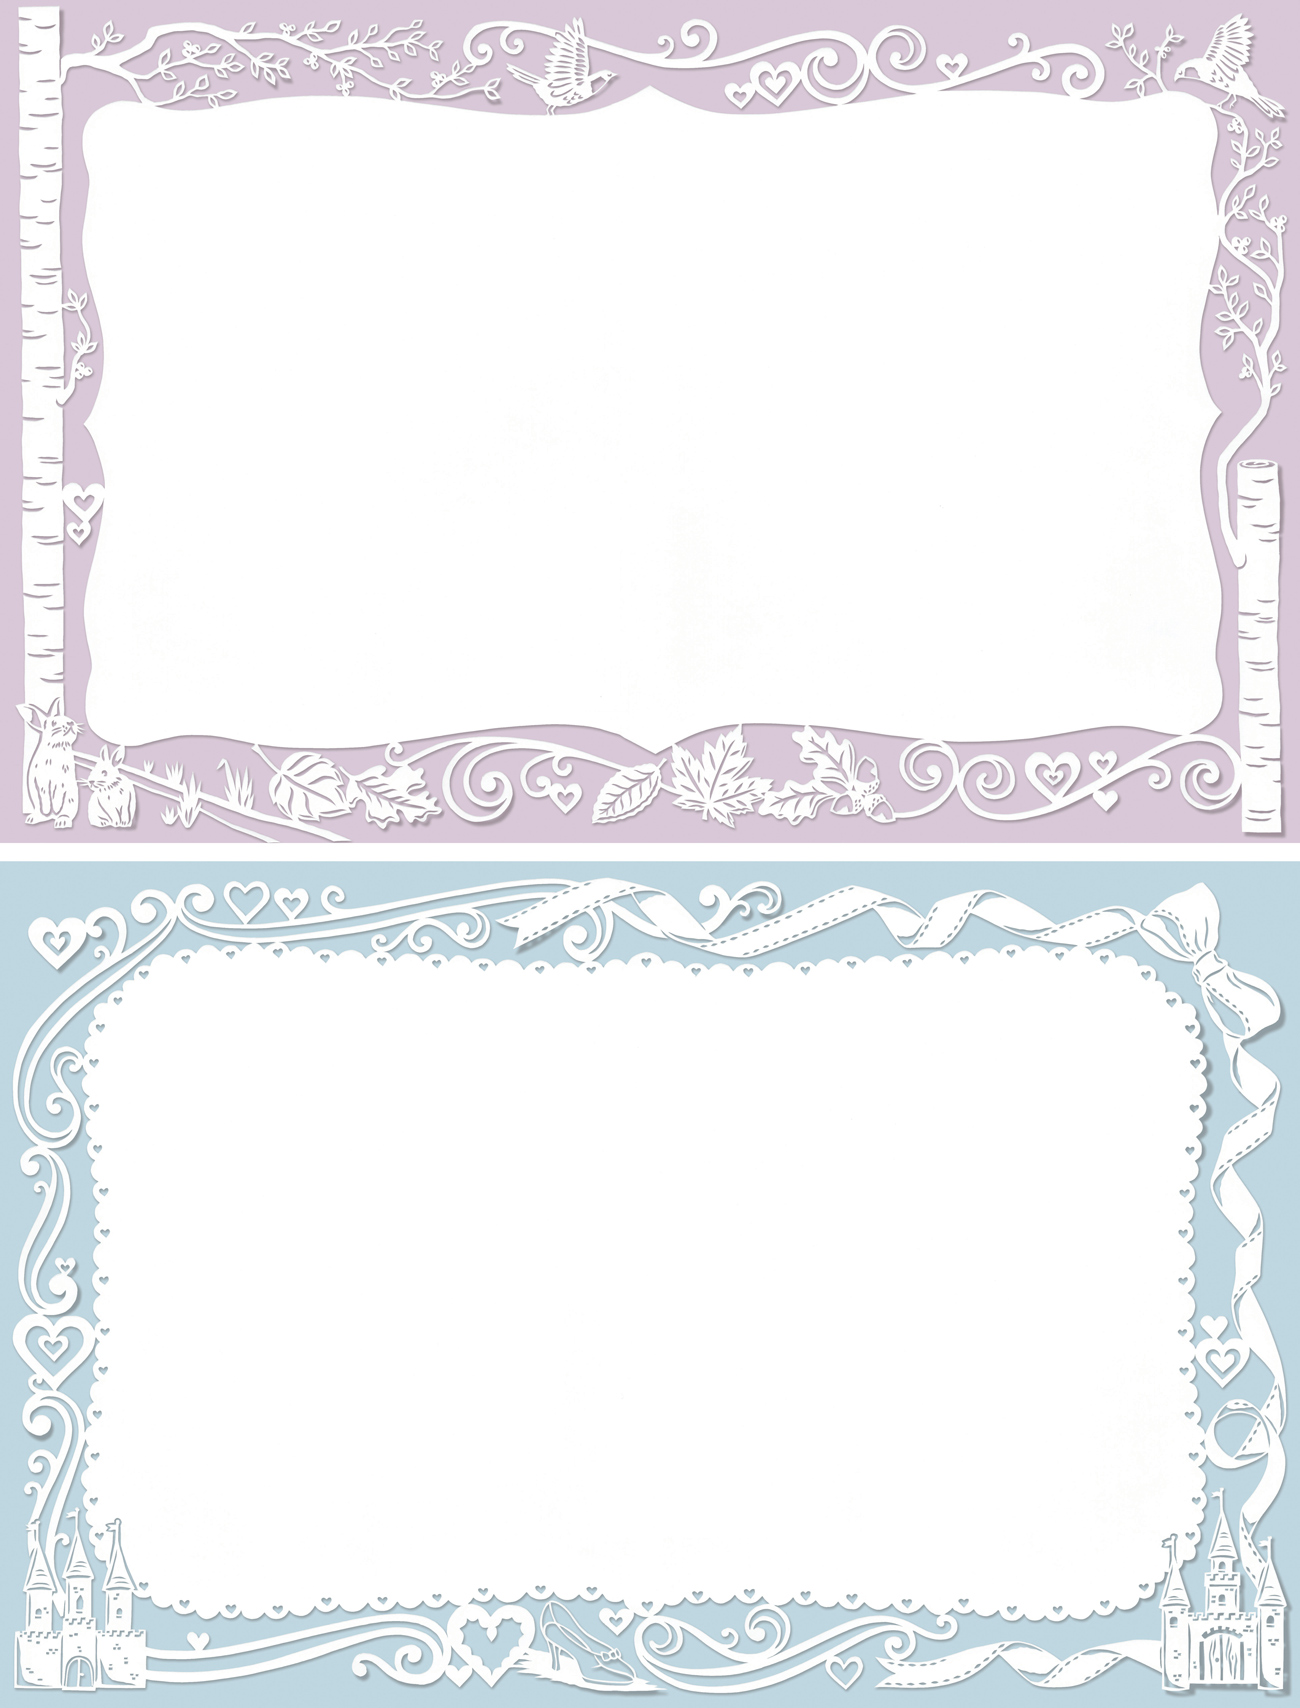 papercut decorative frame